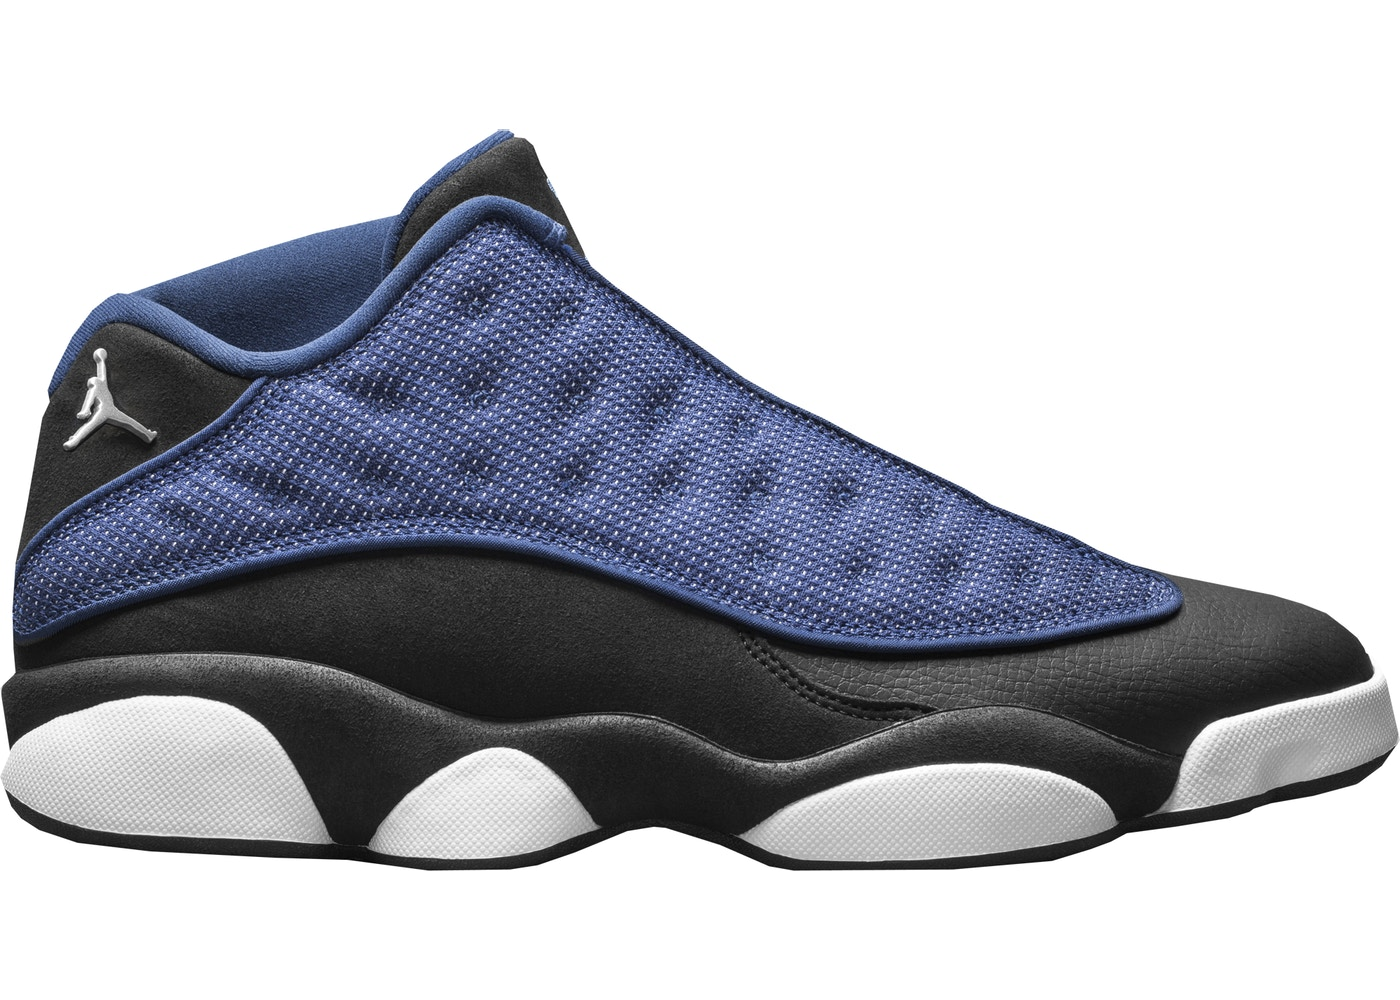 6dfd3807e8f882 Buy Air Jordan 13 Shoes   Deadstock Sneakers